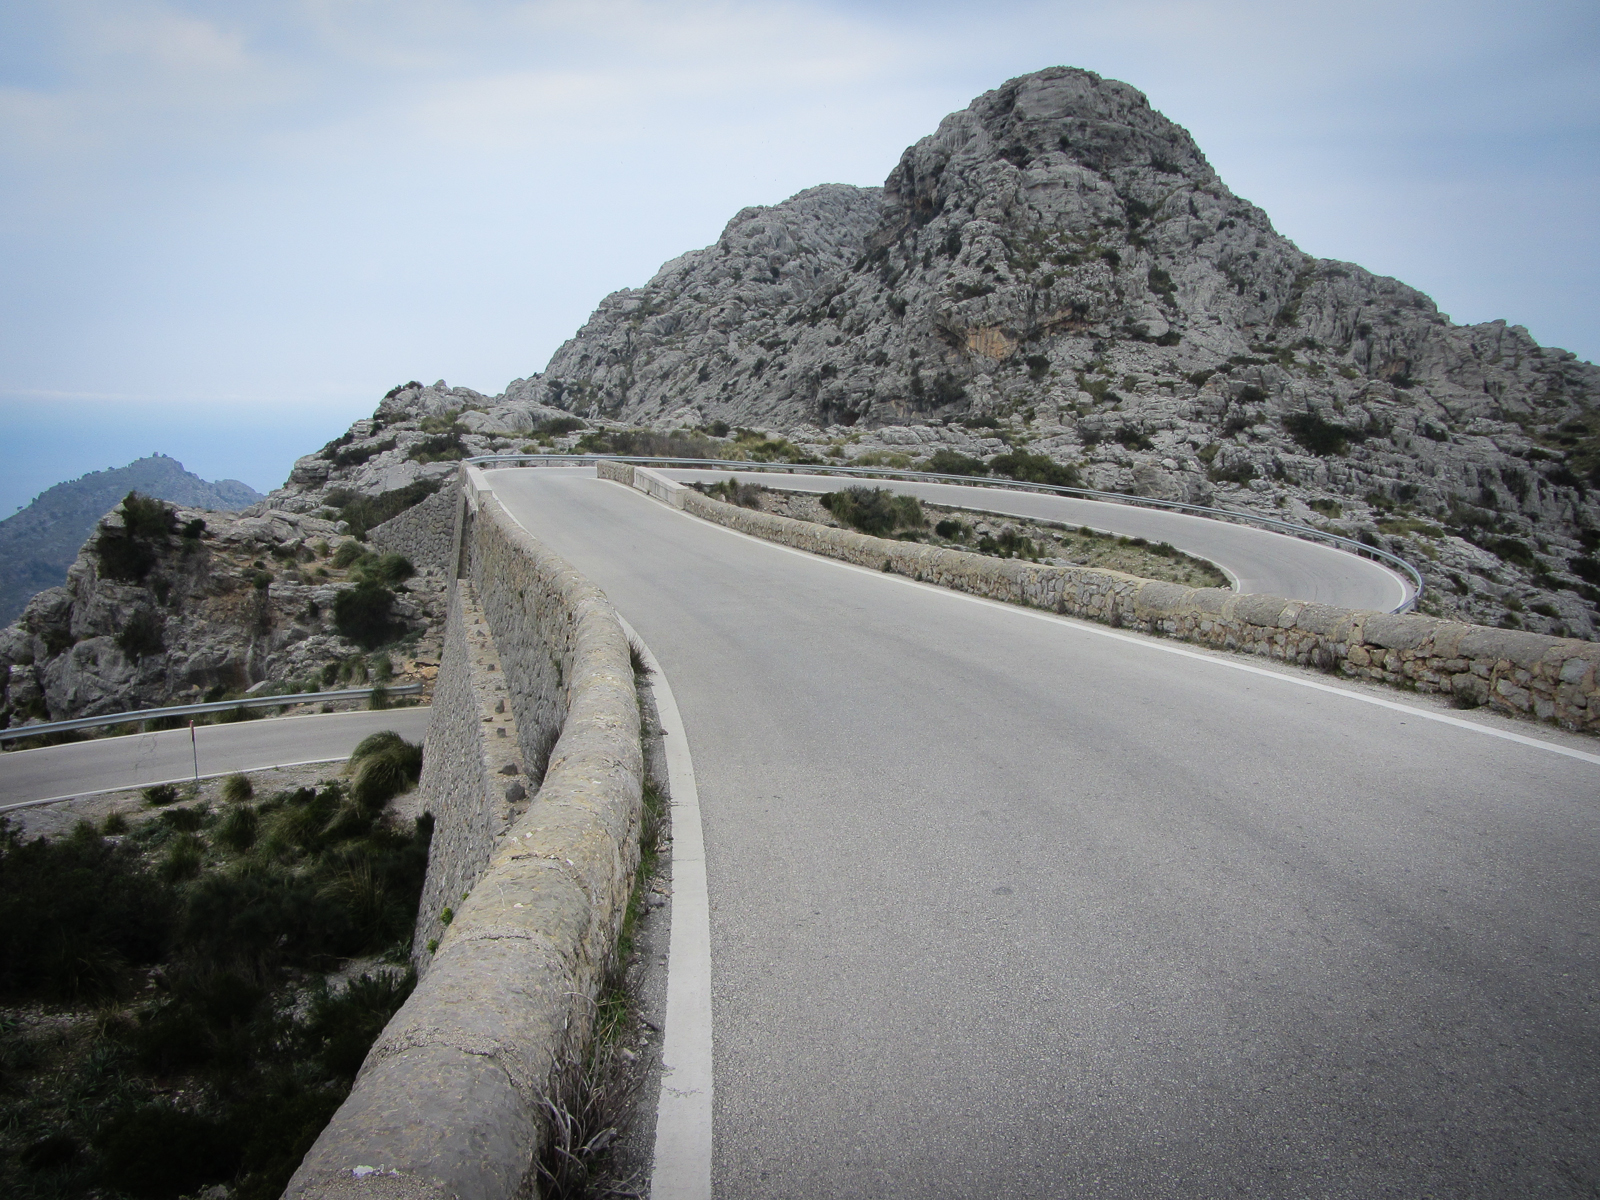 A famous part of the road in the descent to Sa Calobra.